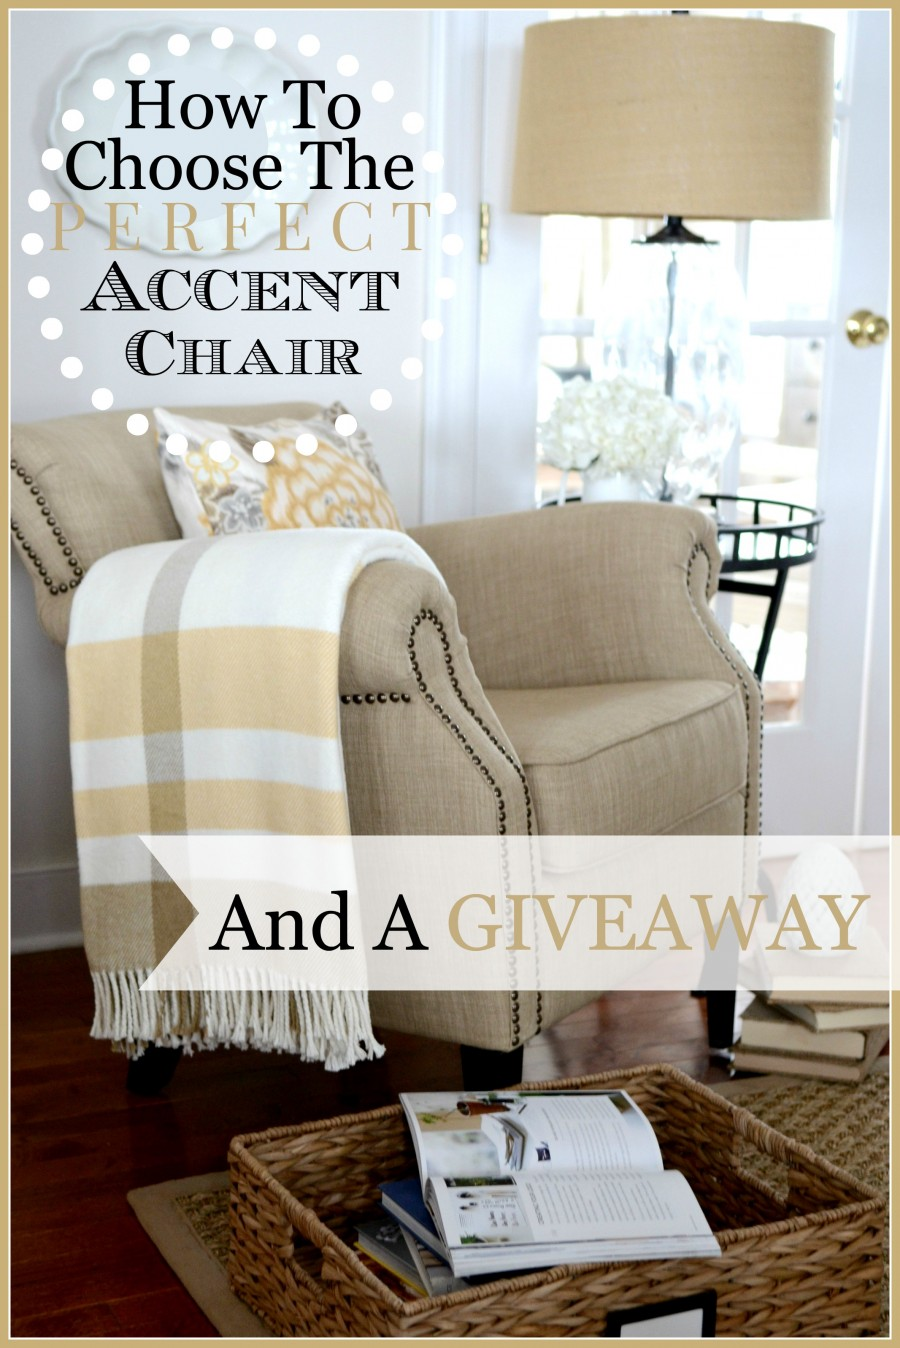 HOW TO CHOOSE THE PERFECT ACCENT CHAIR…. AND A GIVEAWAY!